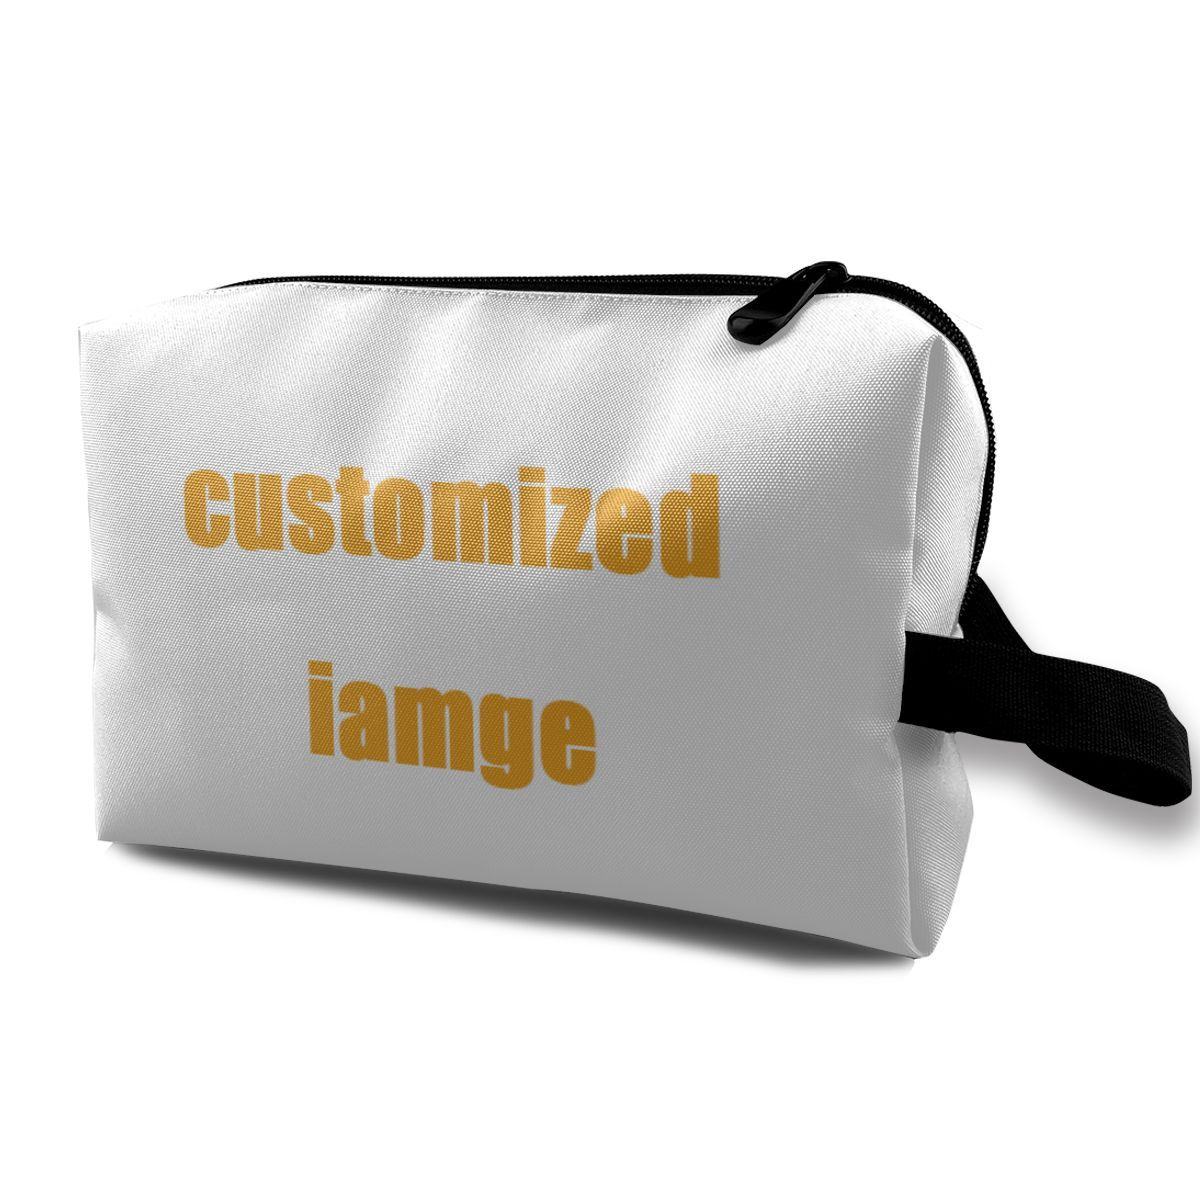 NOISYDESIGNS Custom Women Travel Makeup Bag In Cosmetic Bags & Case Clutch Tote Zipper Handbag Purse Fashion Toiletry Bag